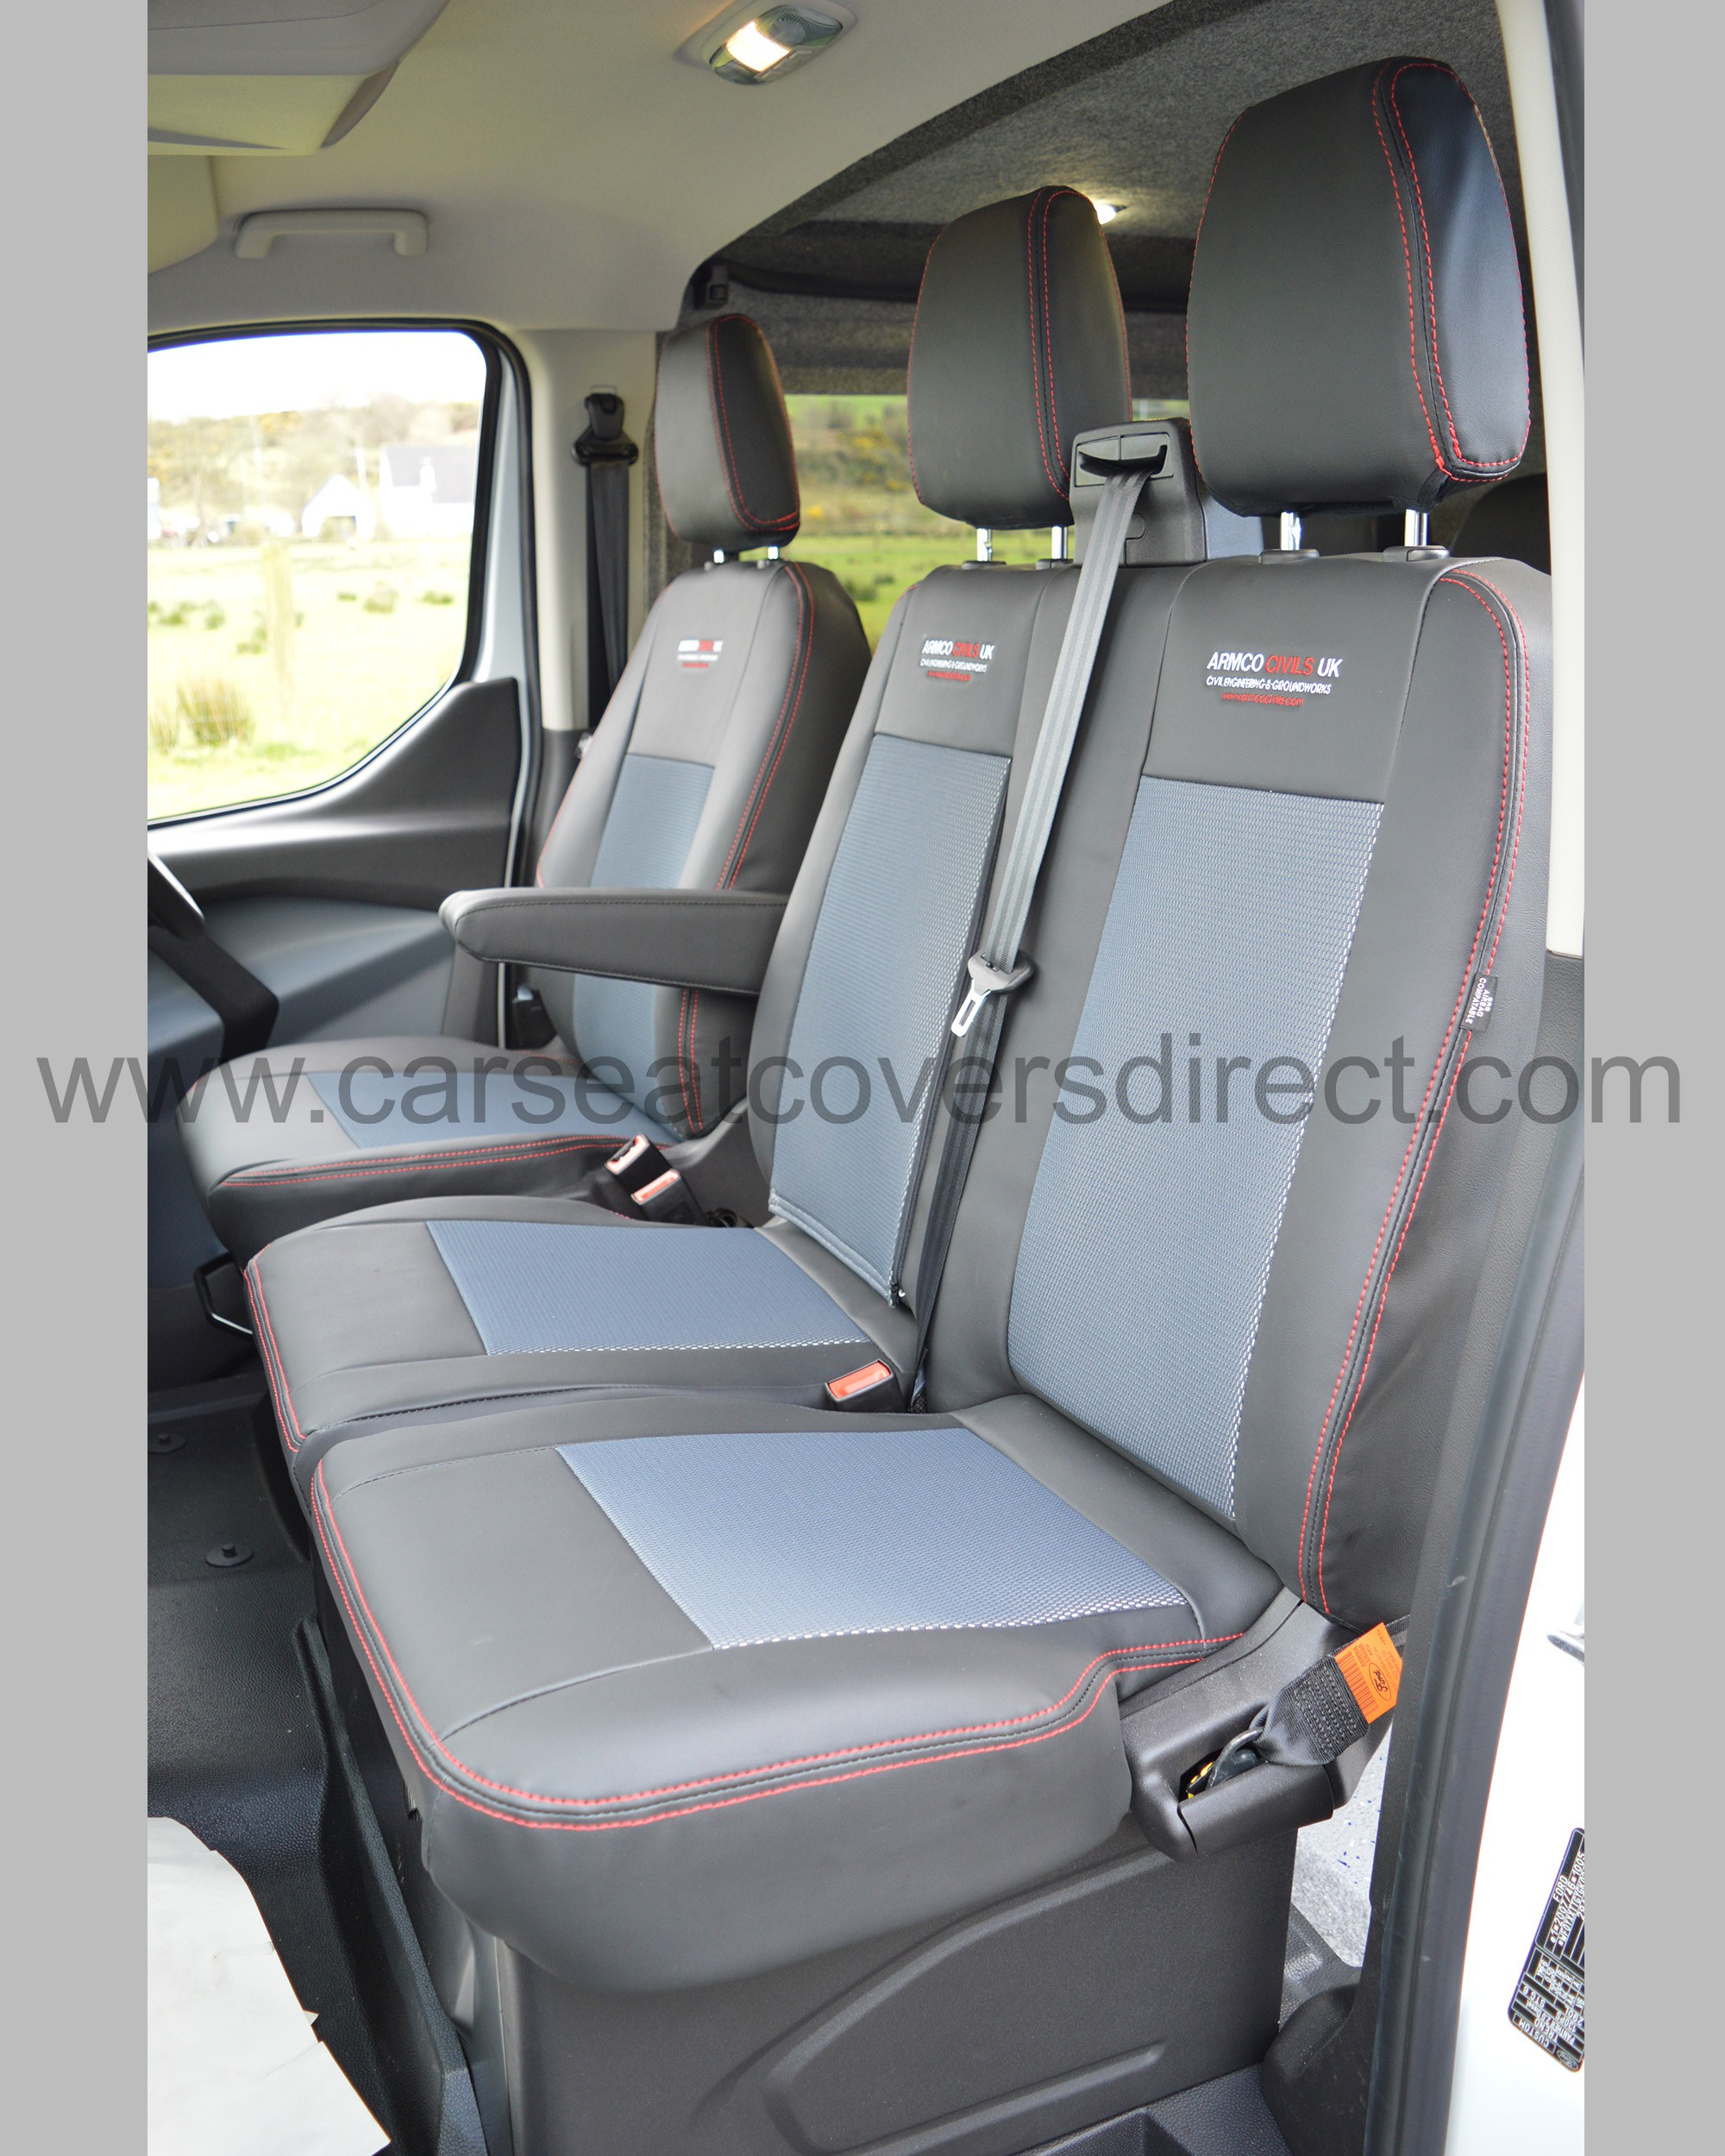 cars with front bench seats uk best car janda. Black Bedroom Furniture Sets. Home Design Ideas